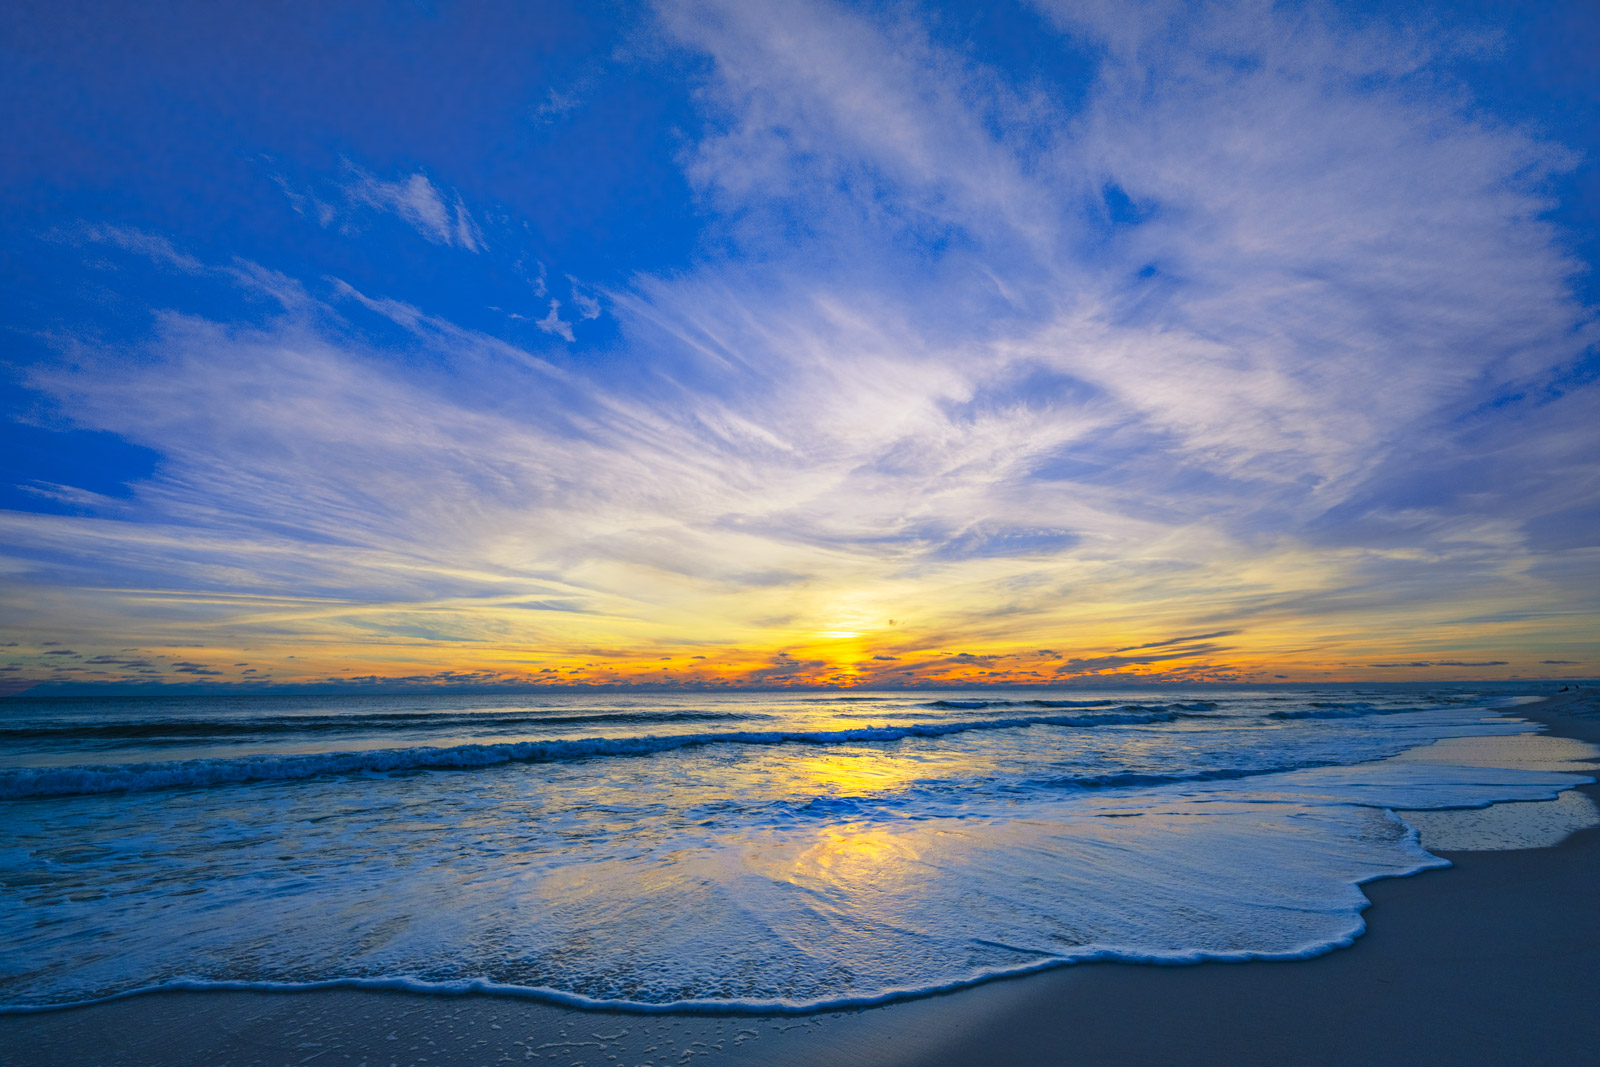 A Limited Edition, Fine Art photograph of sunset at Grayton Beach on the Florida panhandle. Available as a Fine Art print, Metal...